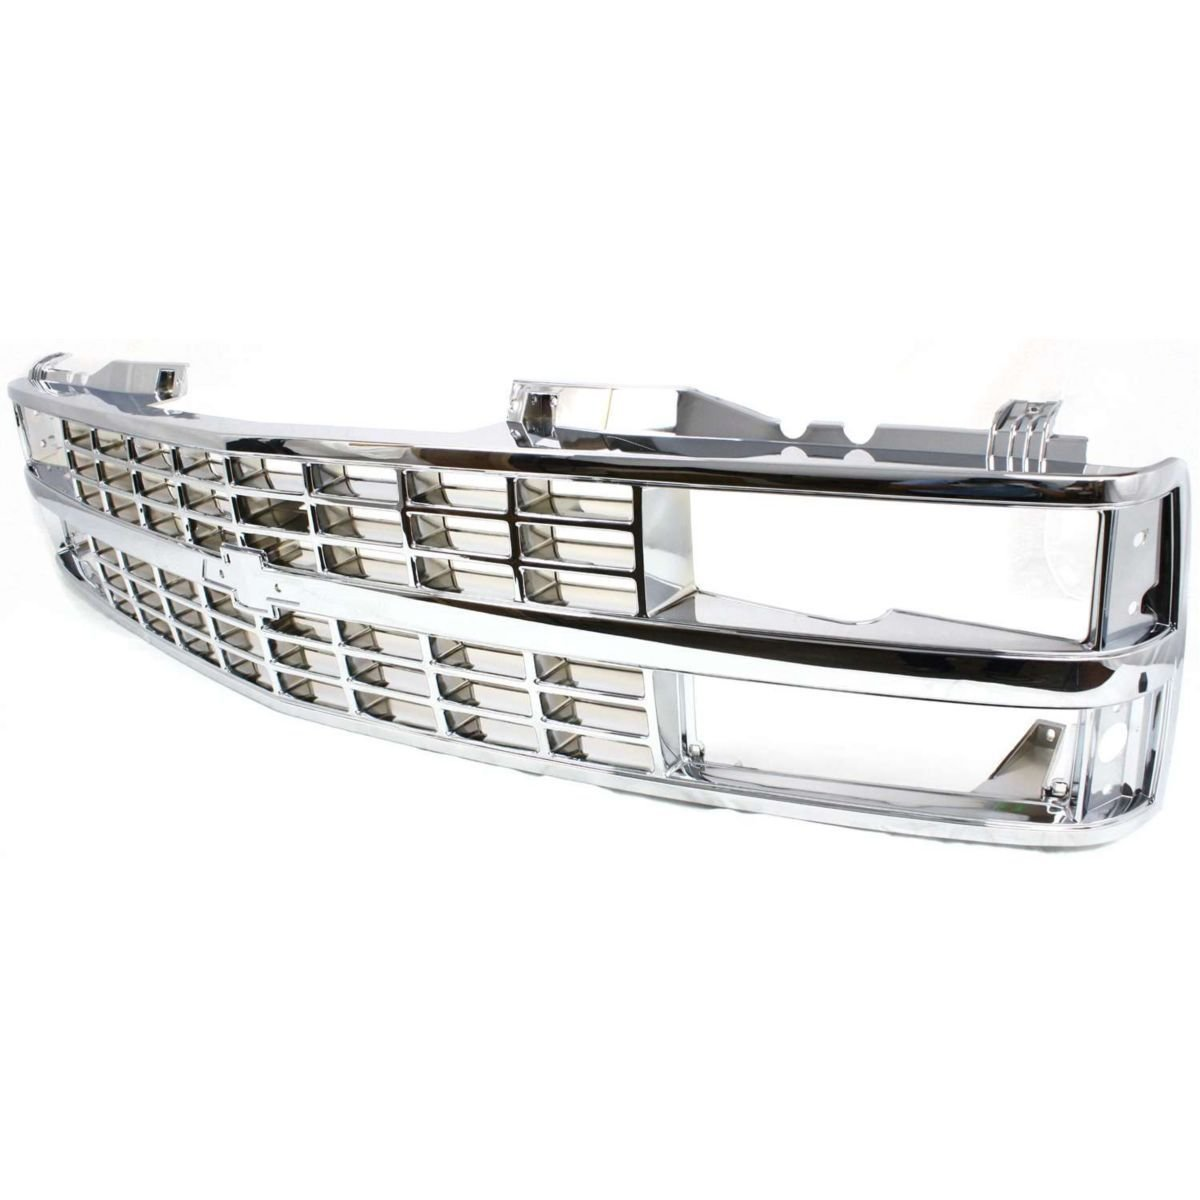 Diften 102-A6103-X01 - New Grille Assembly Chrome Suburban Full Size Truck Chevy Chevrolet R1500 R3500